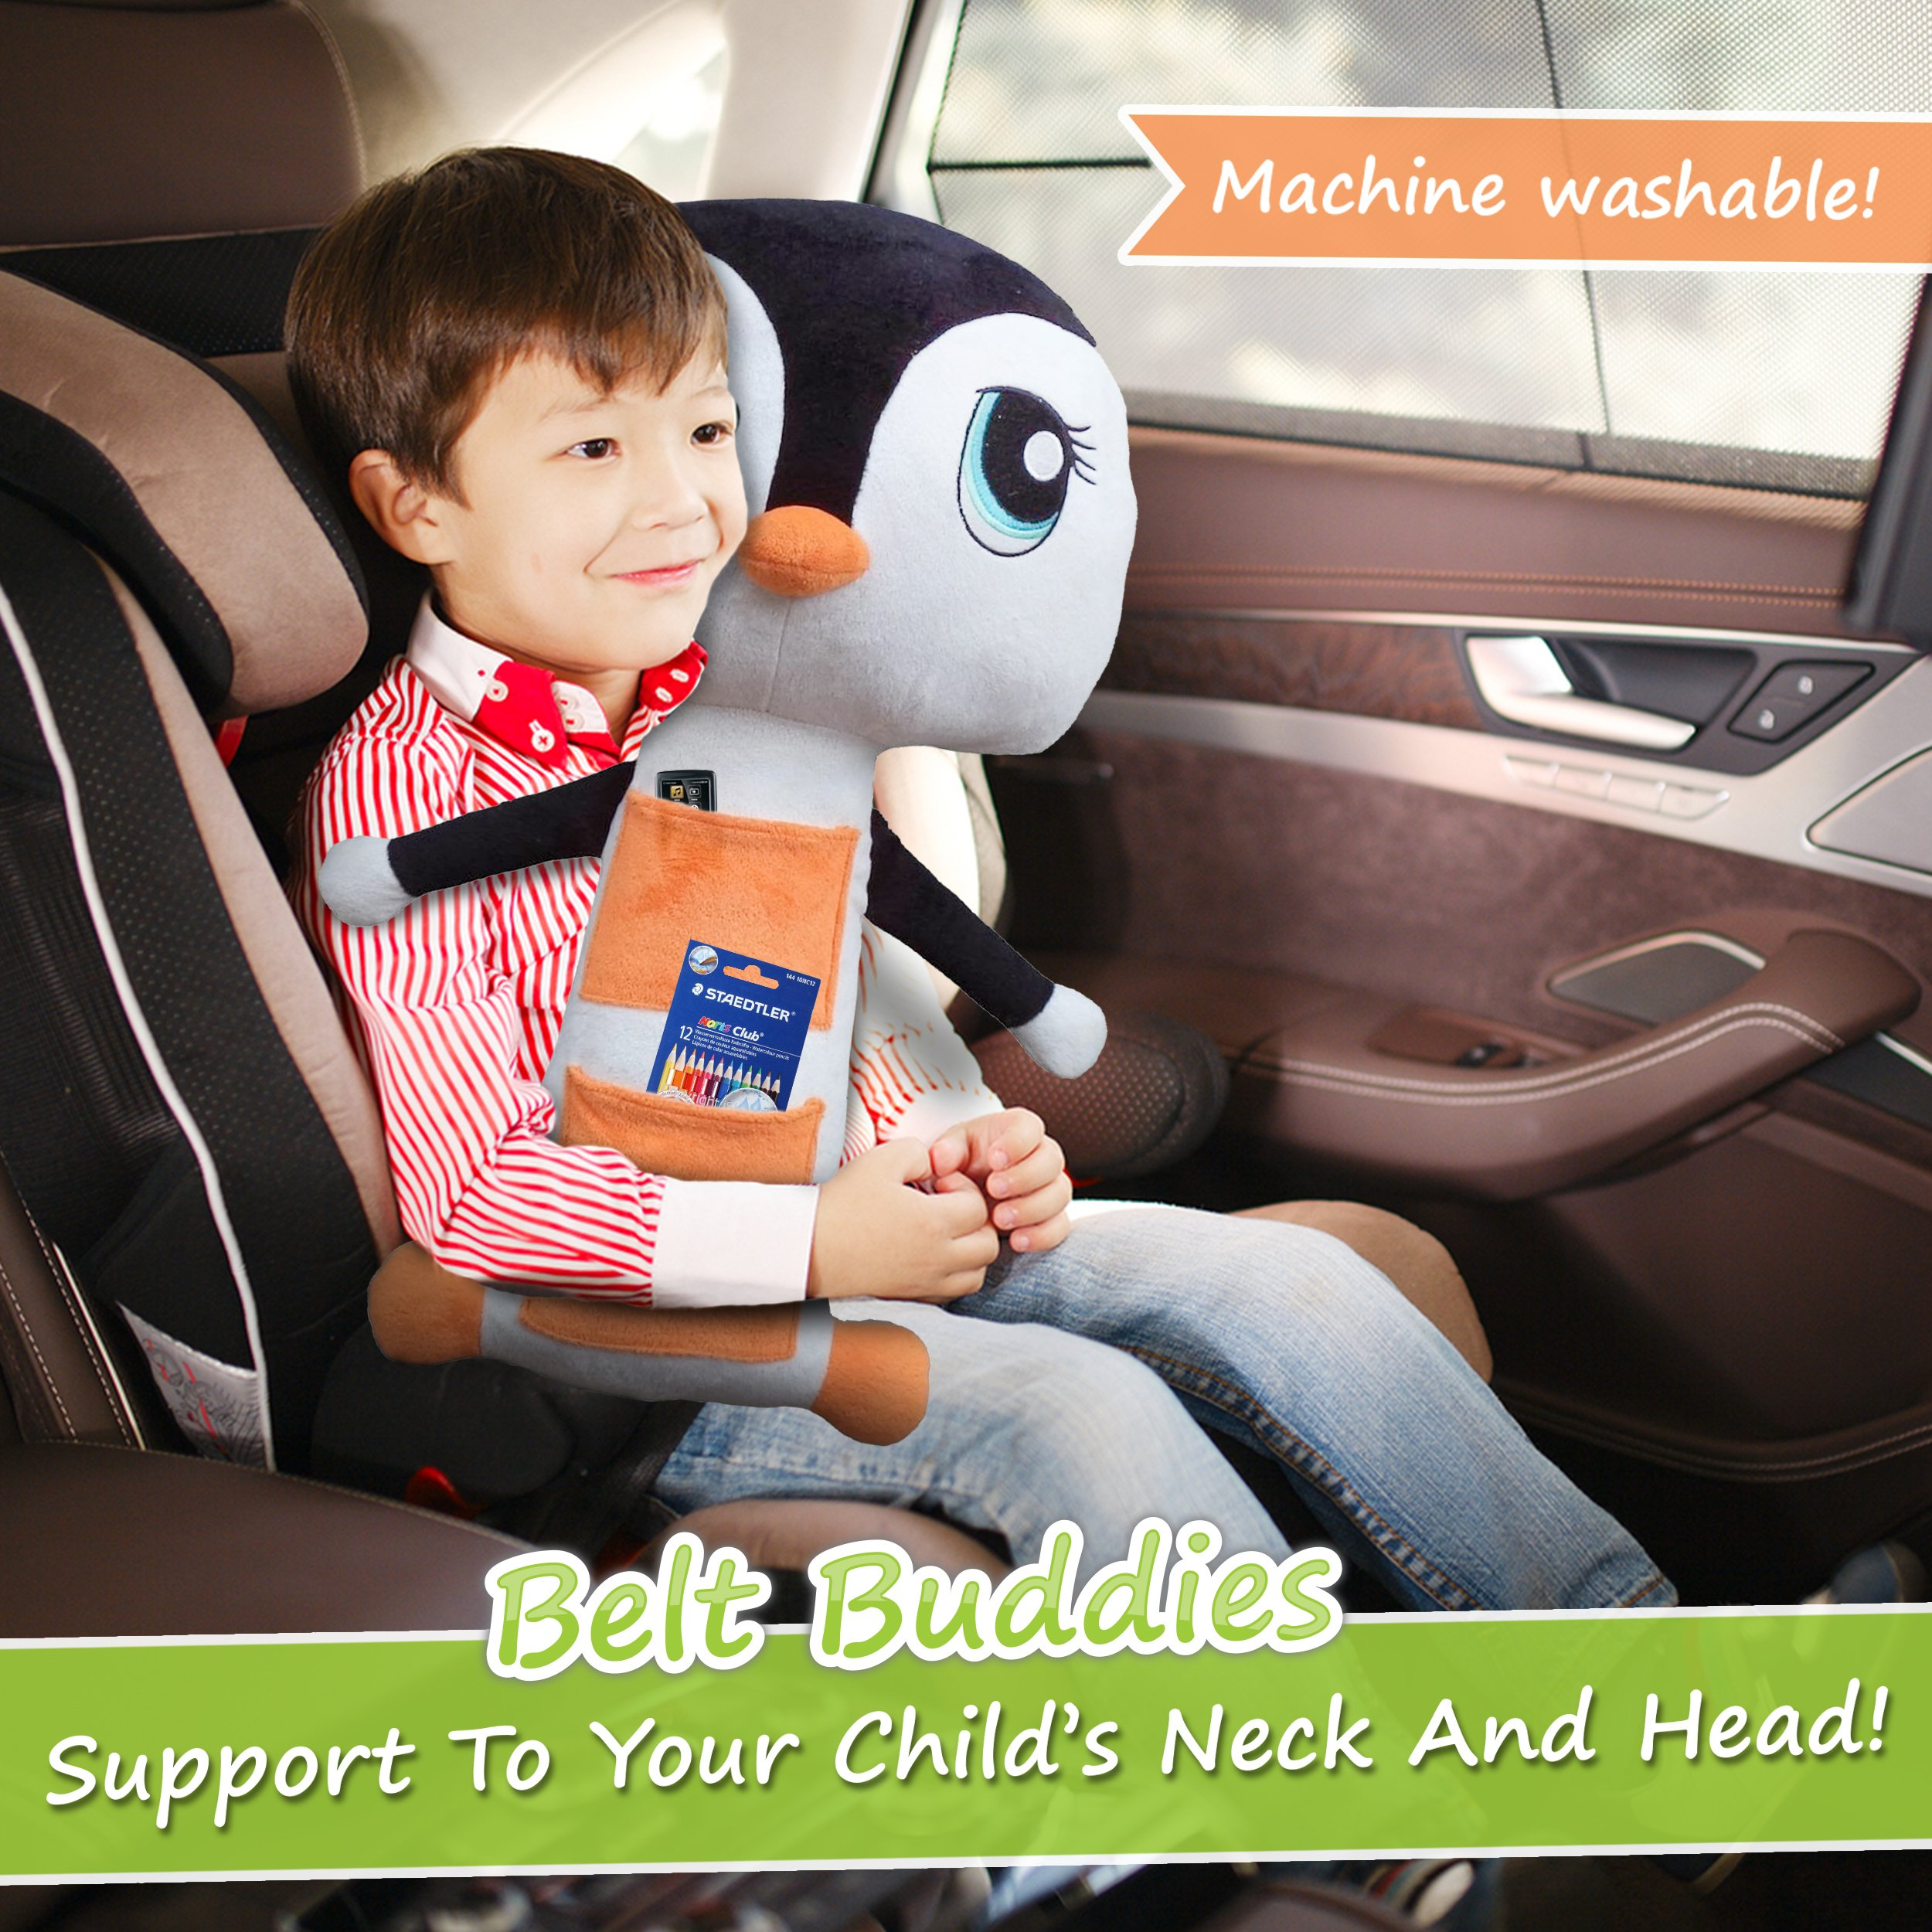 galleon belt buddies penguin car seat toy comfortable and safe children 39 s pillow for the car. Black Bedroom Furniture Sets. Home Design Ideas